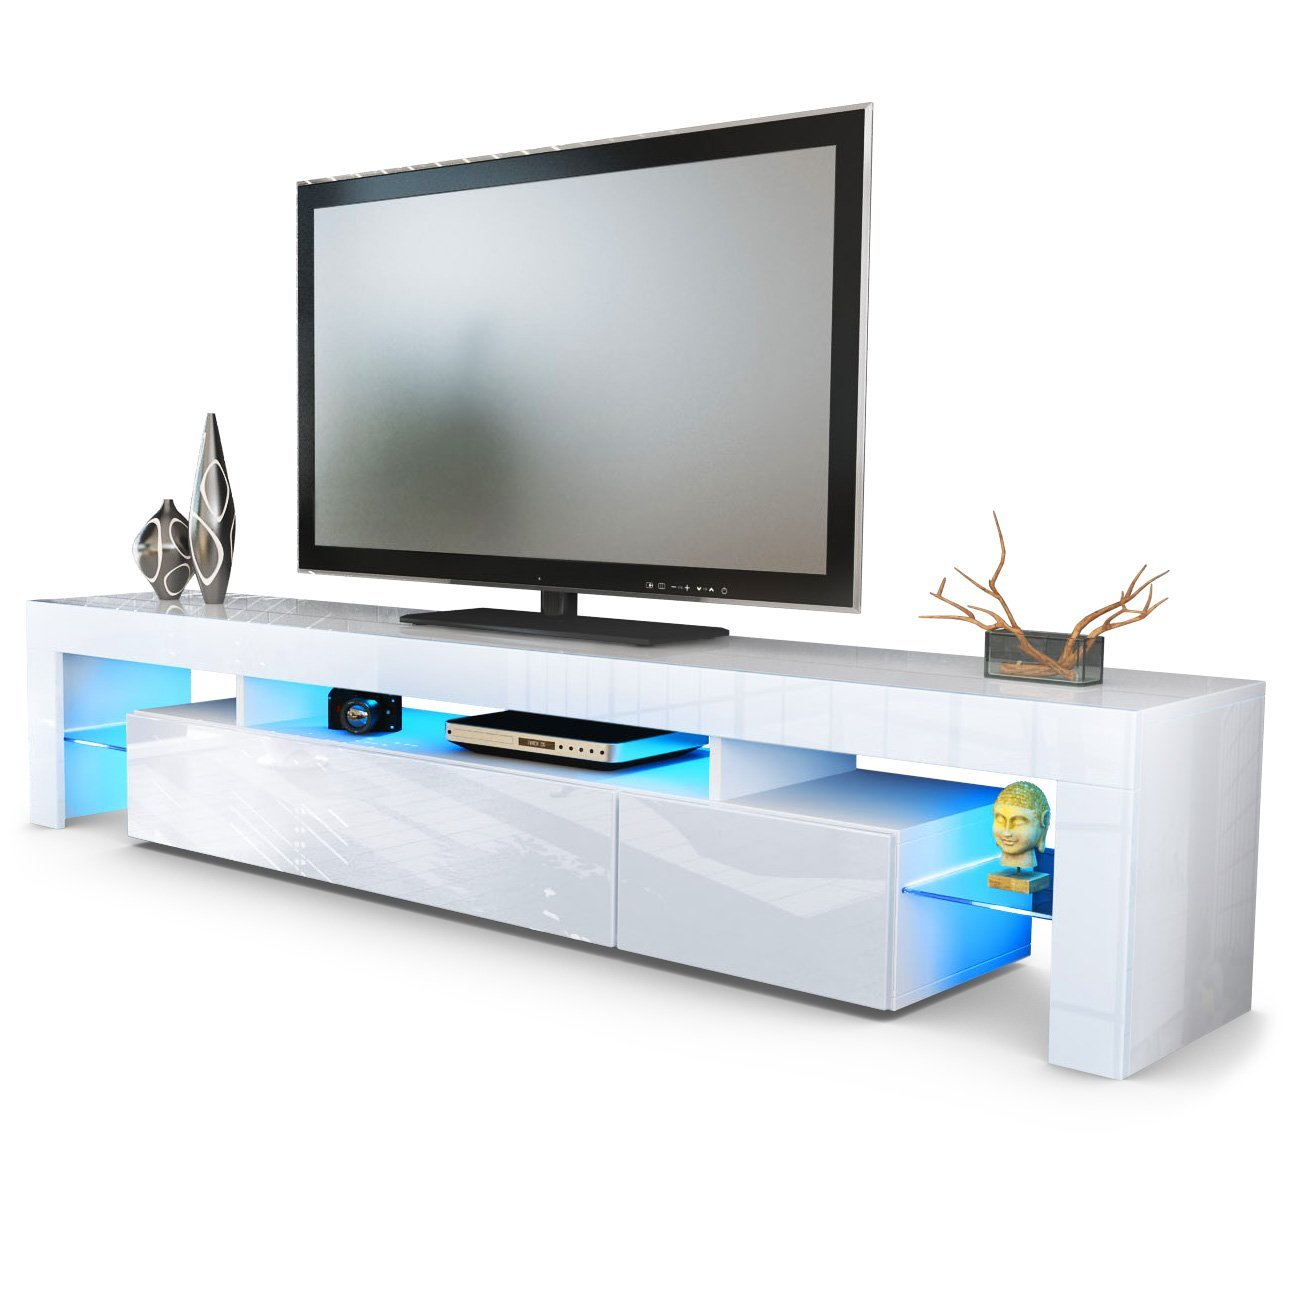 eck tv mbel eckschrank beliebt tv eckschrank perfect ideen eck tv mbel ikea tv mbel lowboards. Black Bedroom Furniture Sets. Home Design Ideas